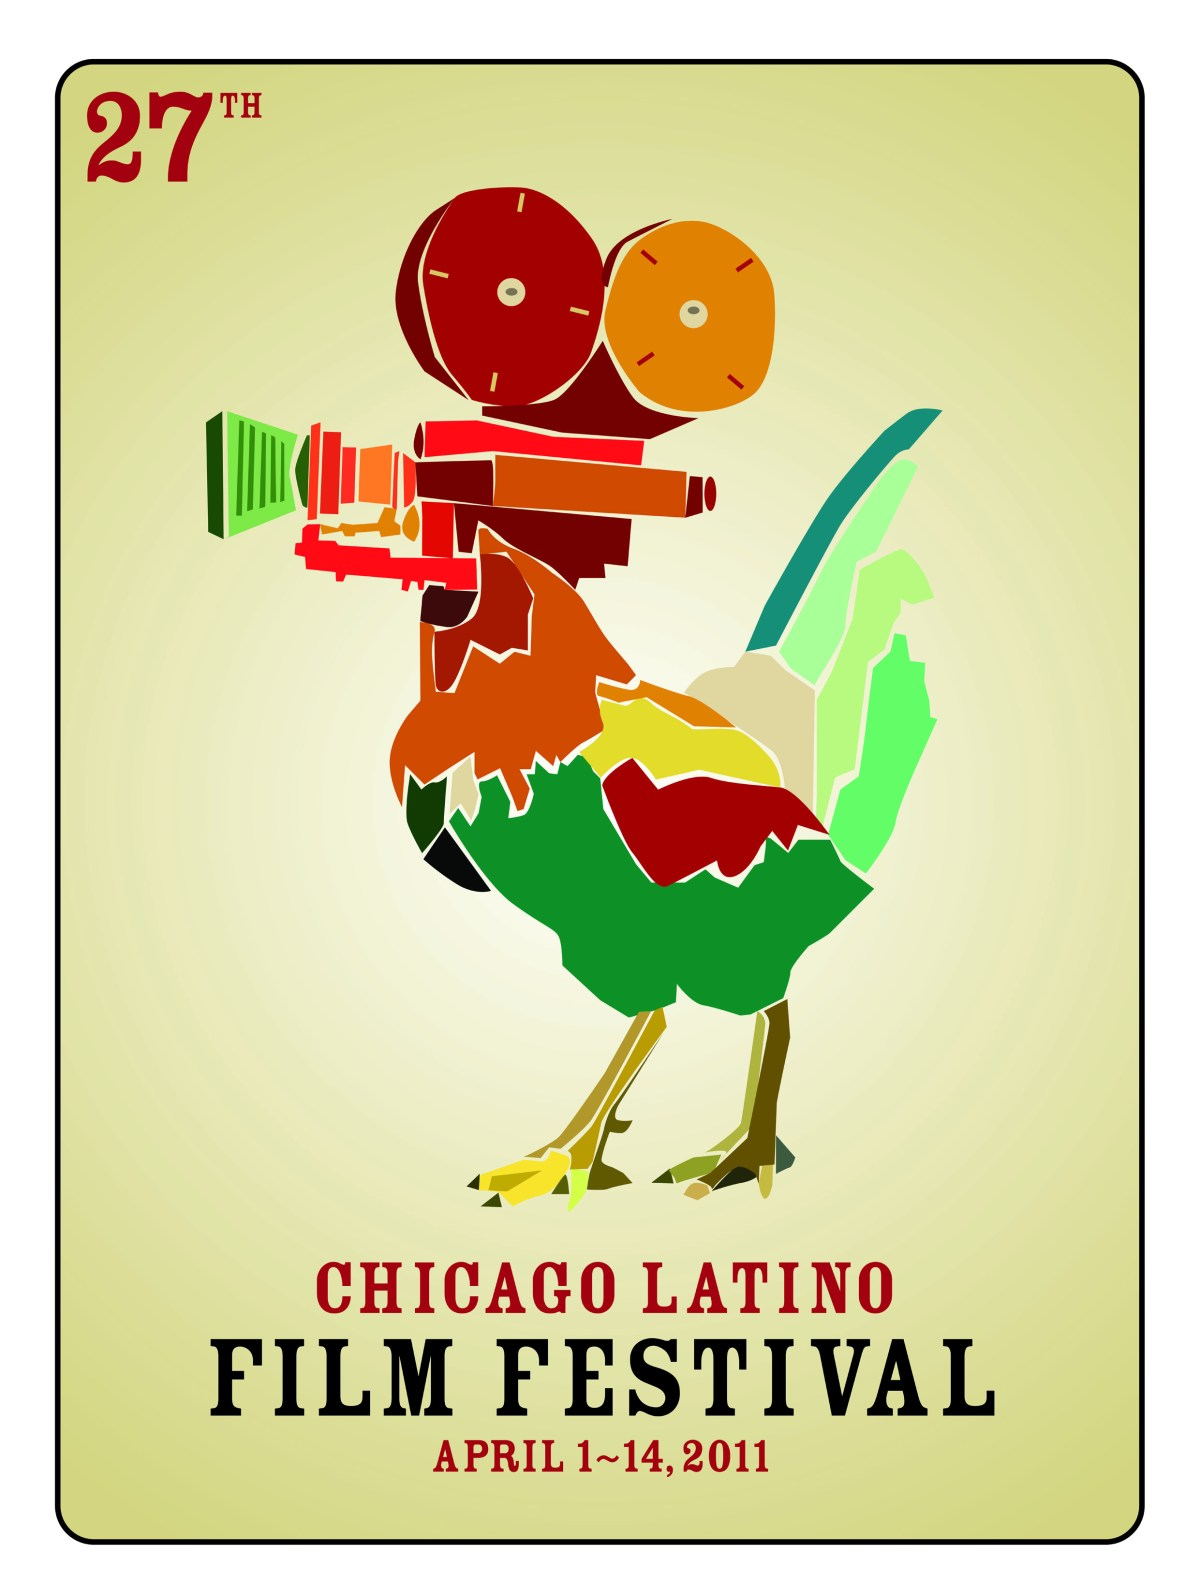 Many local films play in April 1-14 Latino Film Fest